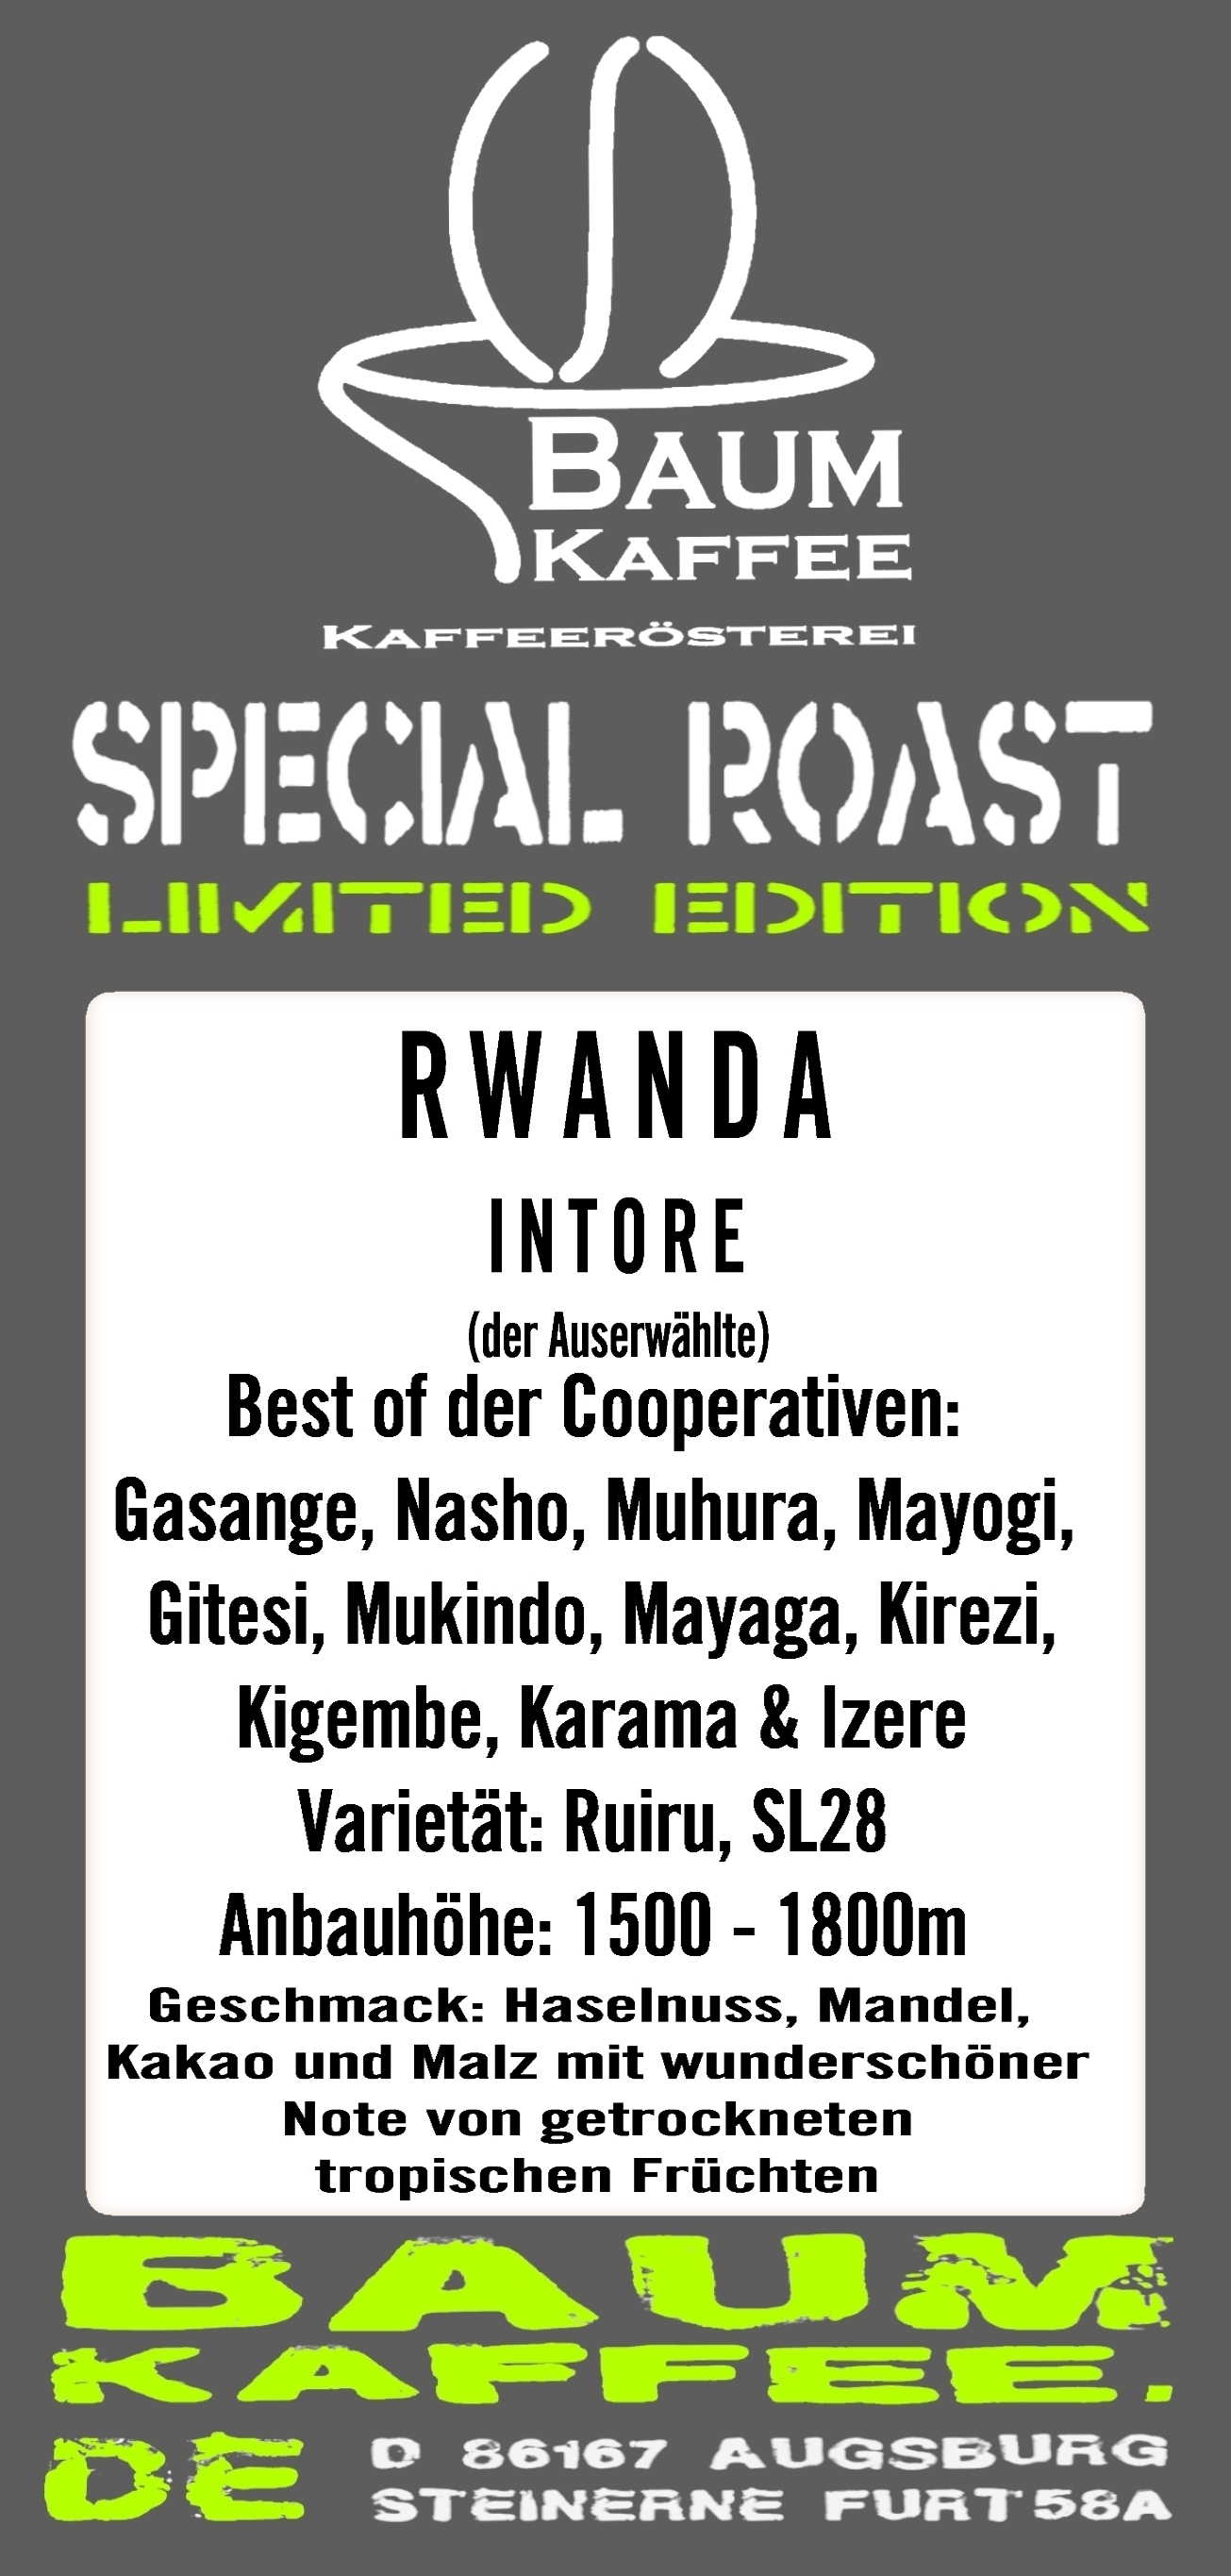 Limited_Edition_RUANDA_INTORE